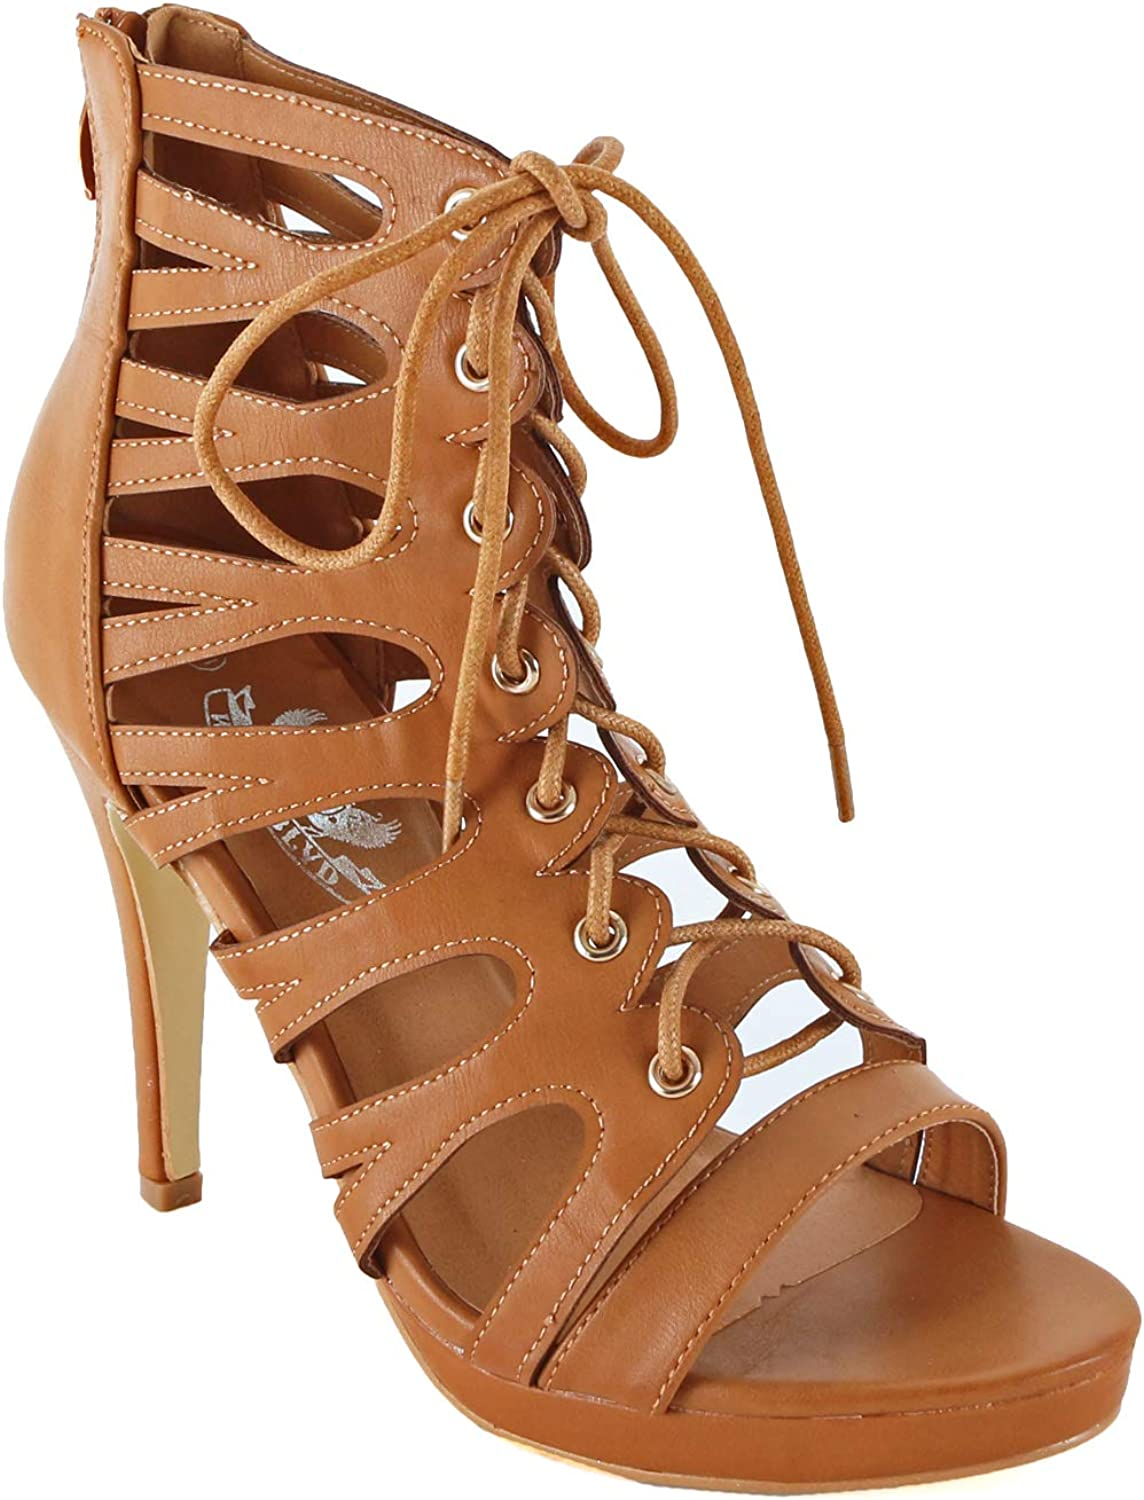 Guilty Heart Womens Cutout Gladiator Lace up High Heel   Open Toe Caged Stiletto Sandals